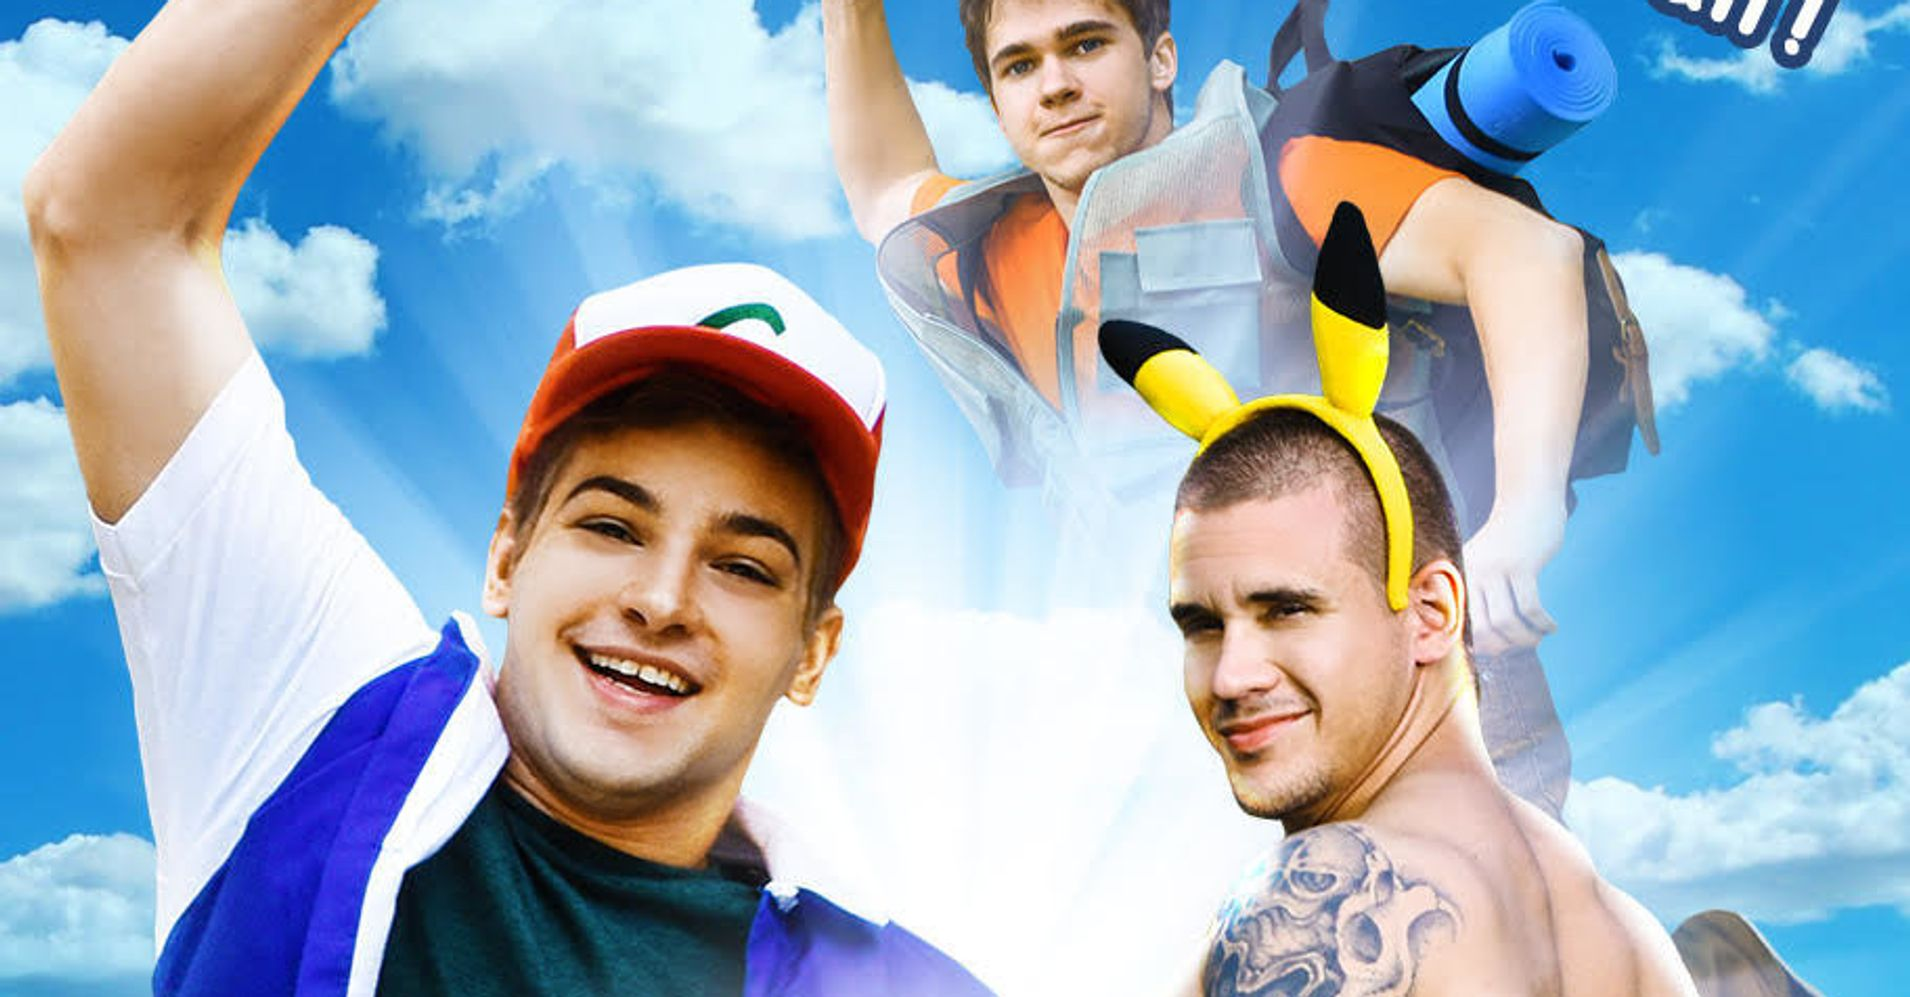 The Gay Pokémon Go Porn Parody You Didn't Know You Wanted Is Here | HuffPost